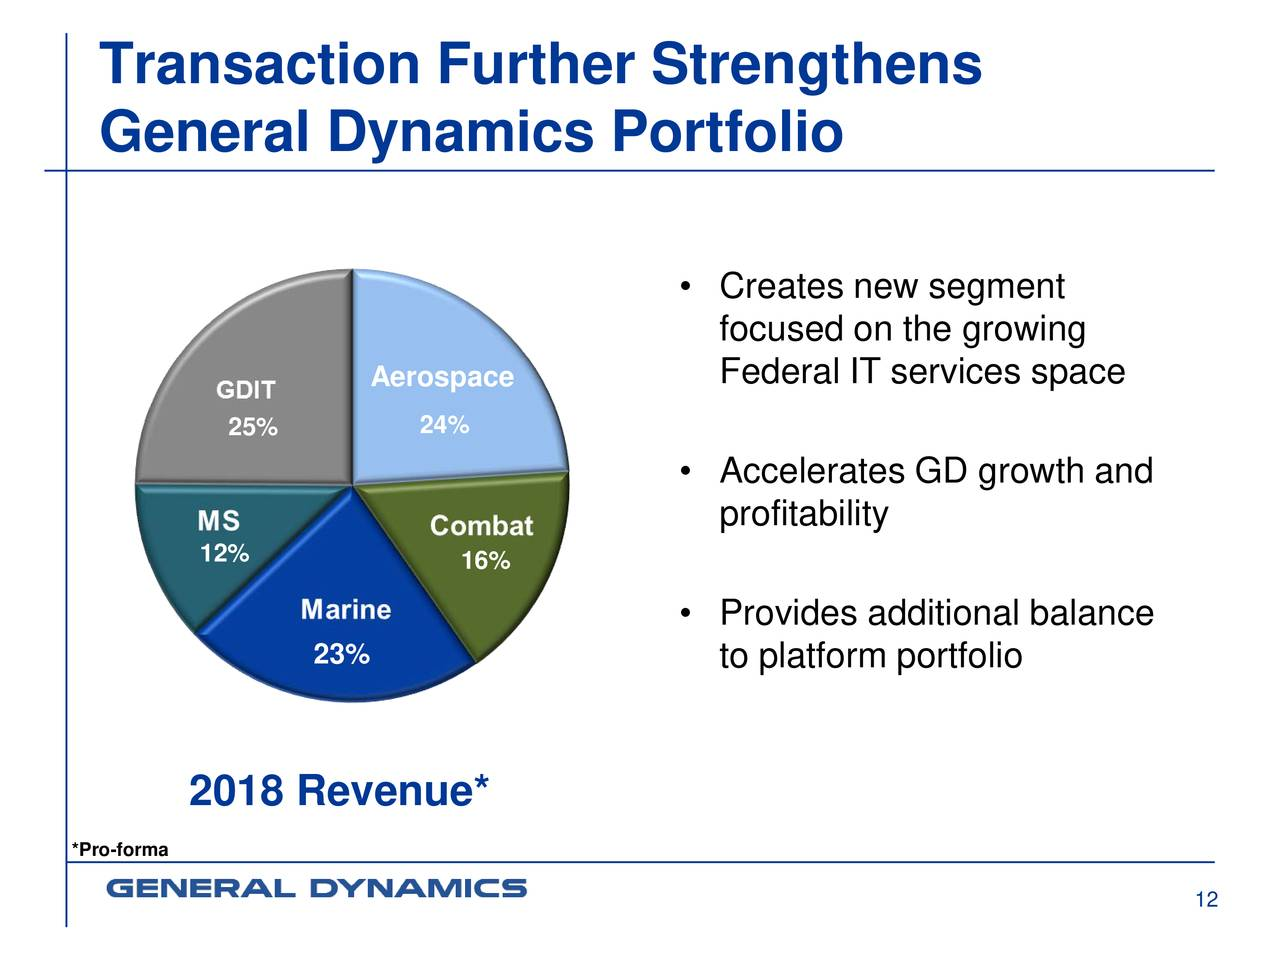 General Dynamics (GD) To Acquire CSRA (CSRA) - General